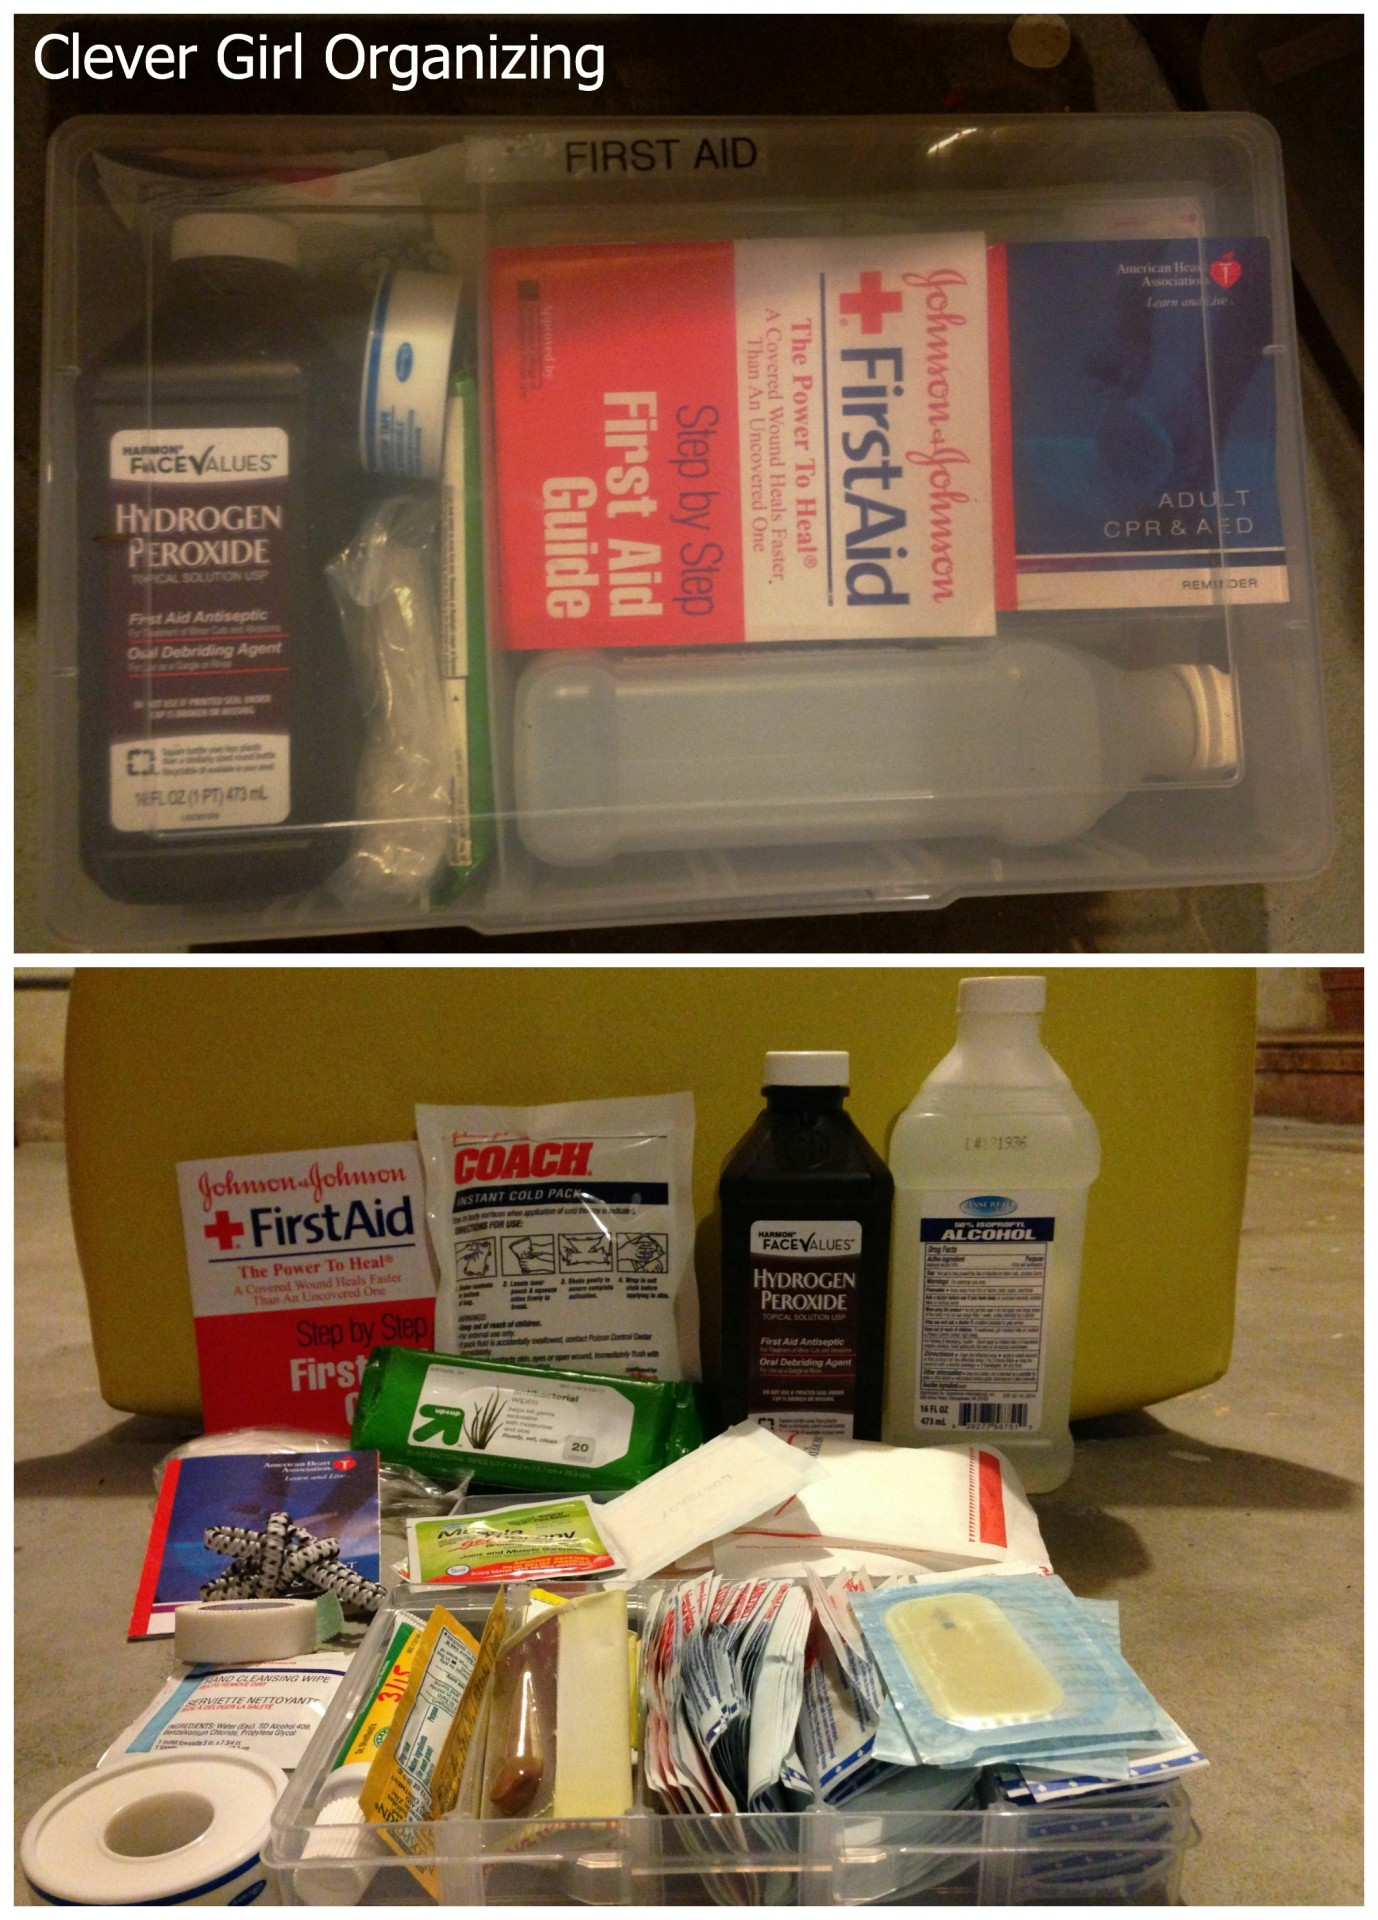 Bandages, Alcohol, Hydrogen Peroxide, Wipes, Tape, Antibiotic Cream, First Aid and CPR pamphlets, etc.